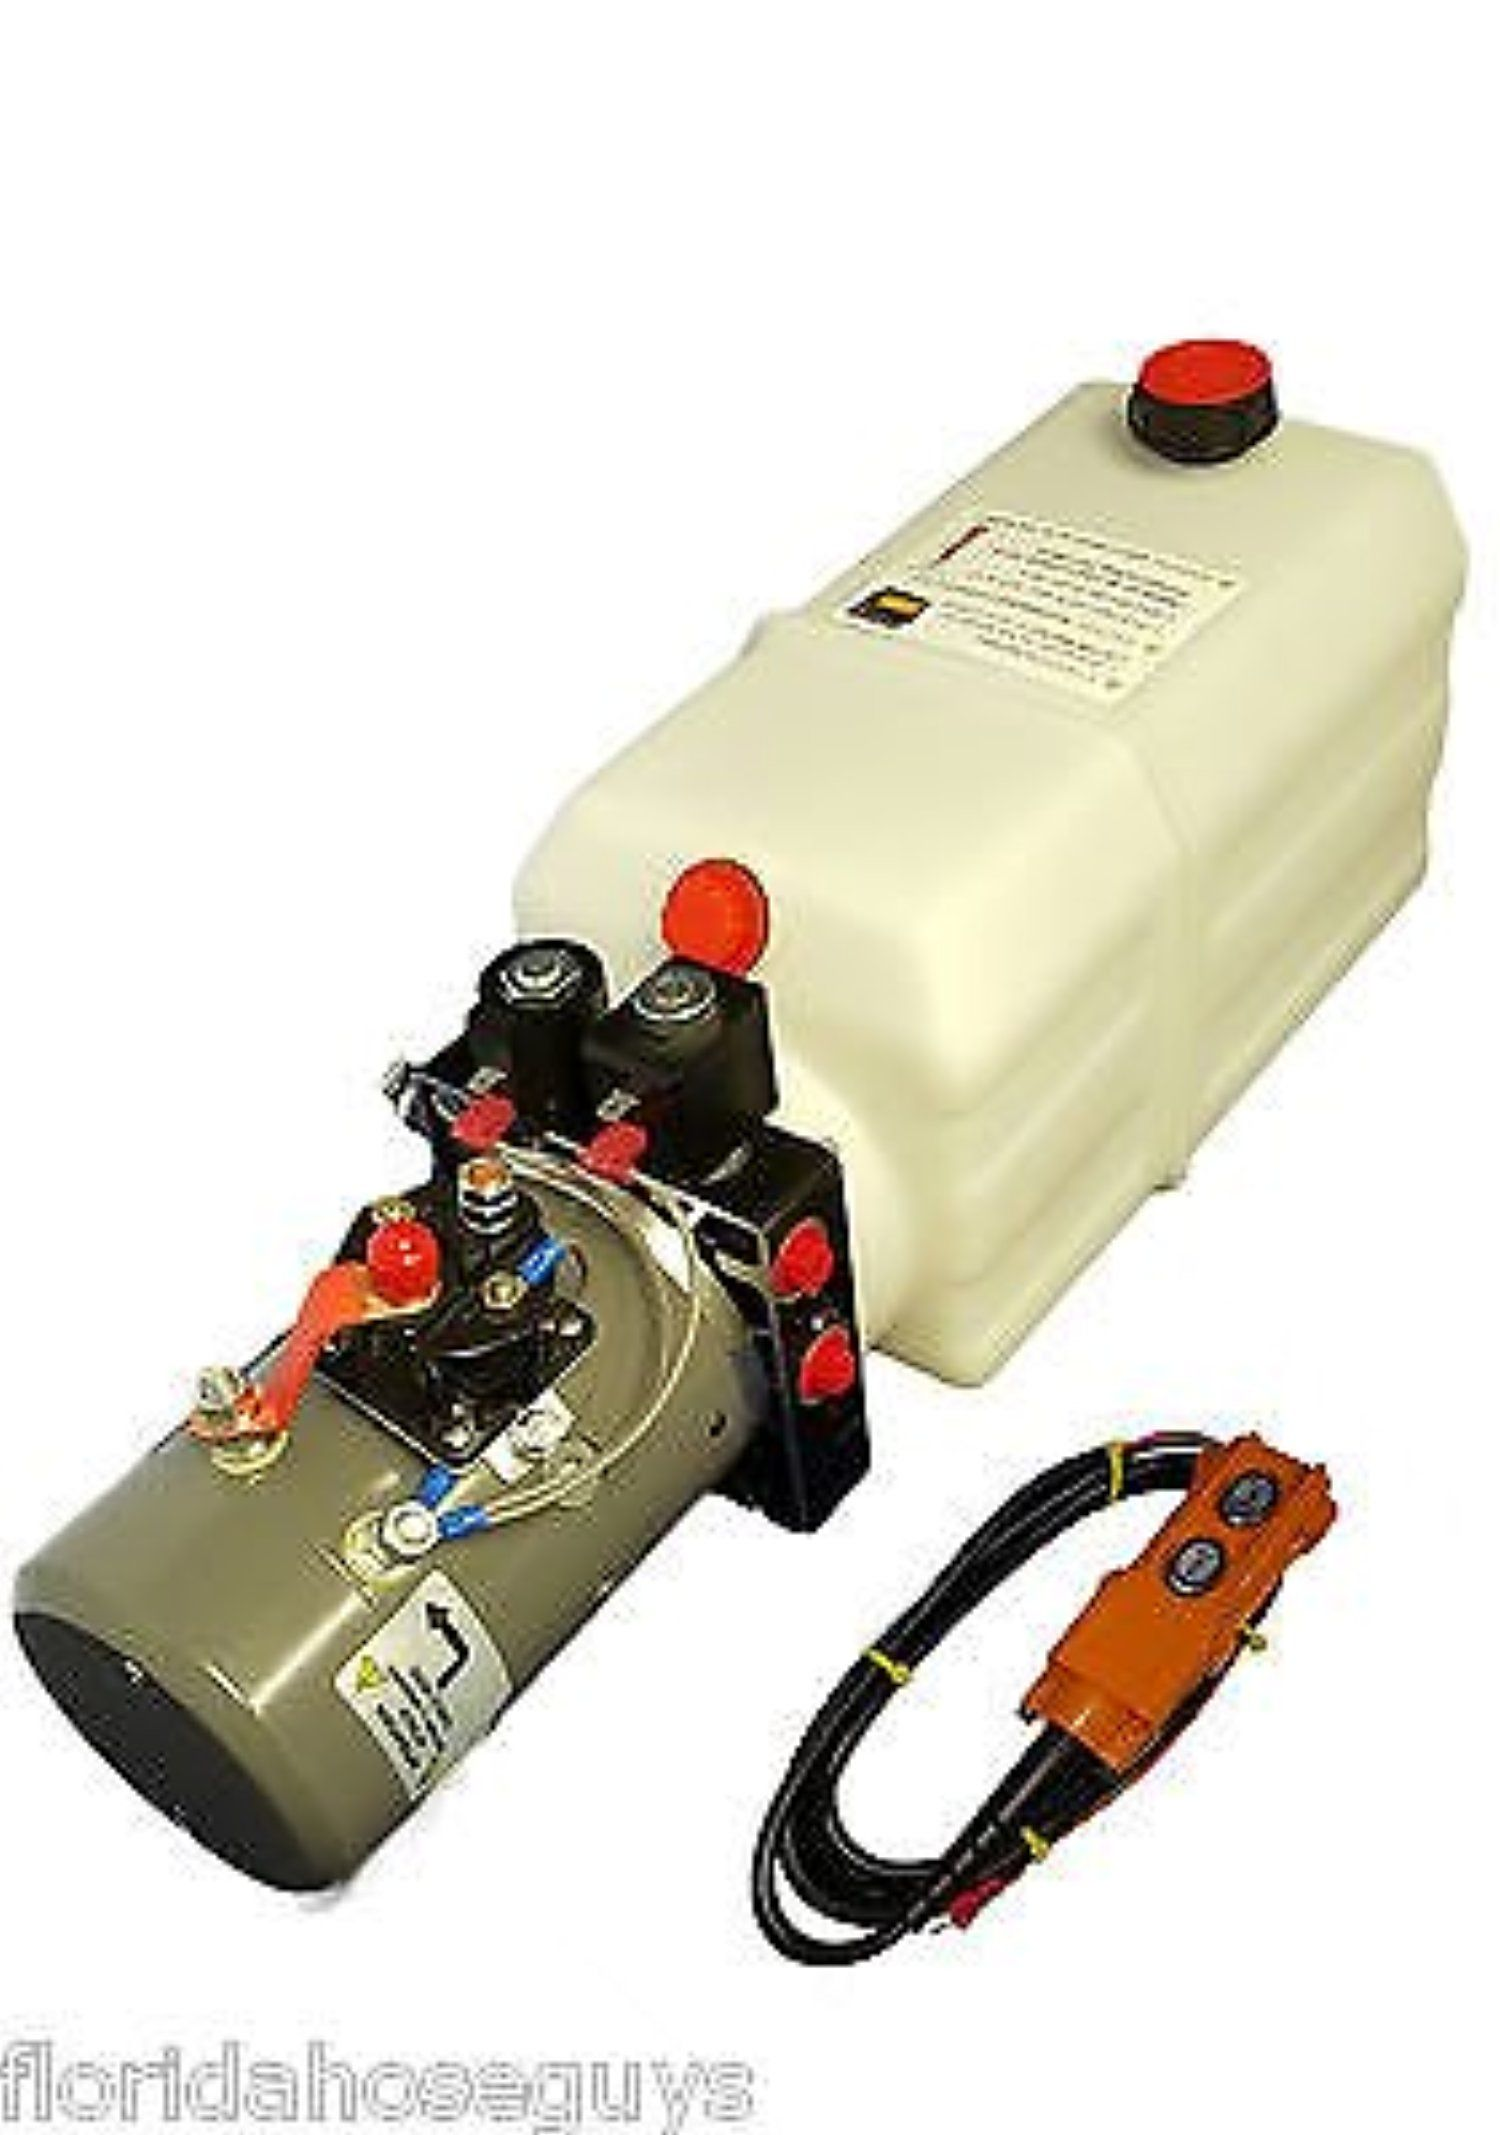 Kti Hydraulic Power Unit Double Acting 12v 8qt Tank For Dump Trailers Awesome Products Selected By Anna Churchil Dump Trailers Trailer Accessories Hydraulic